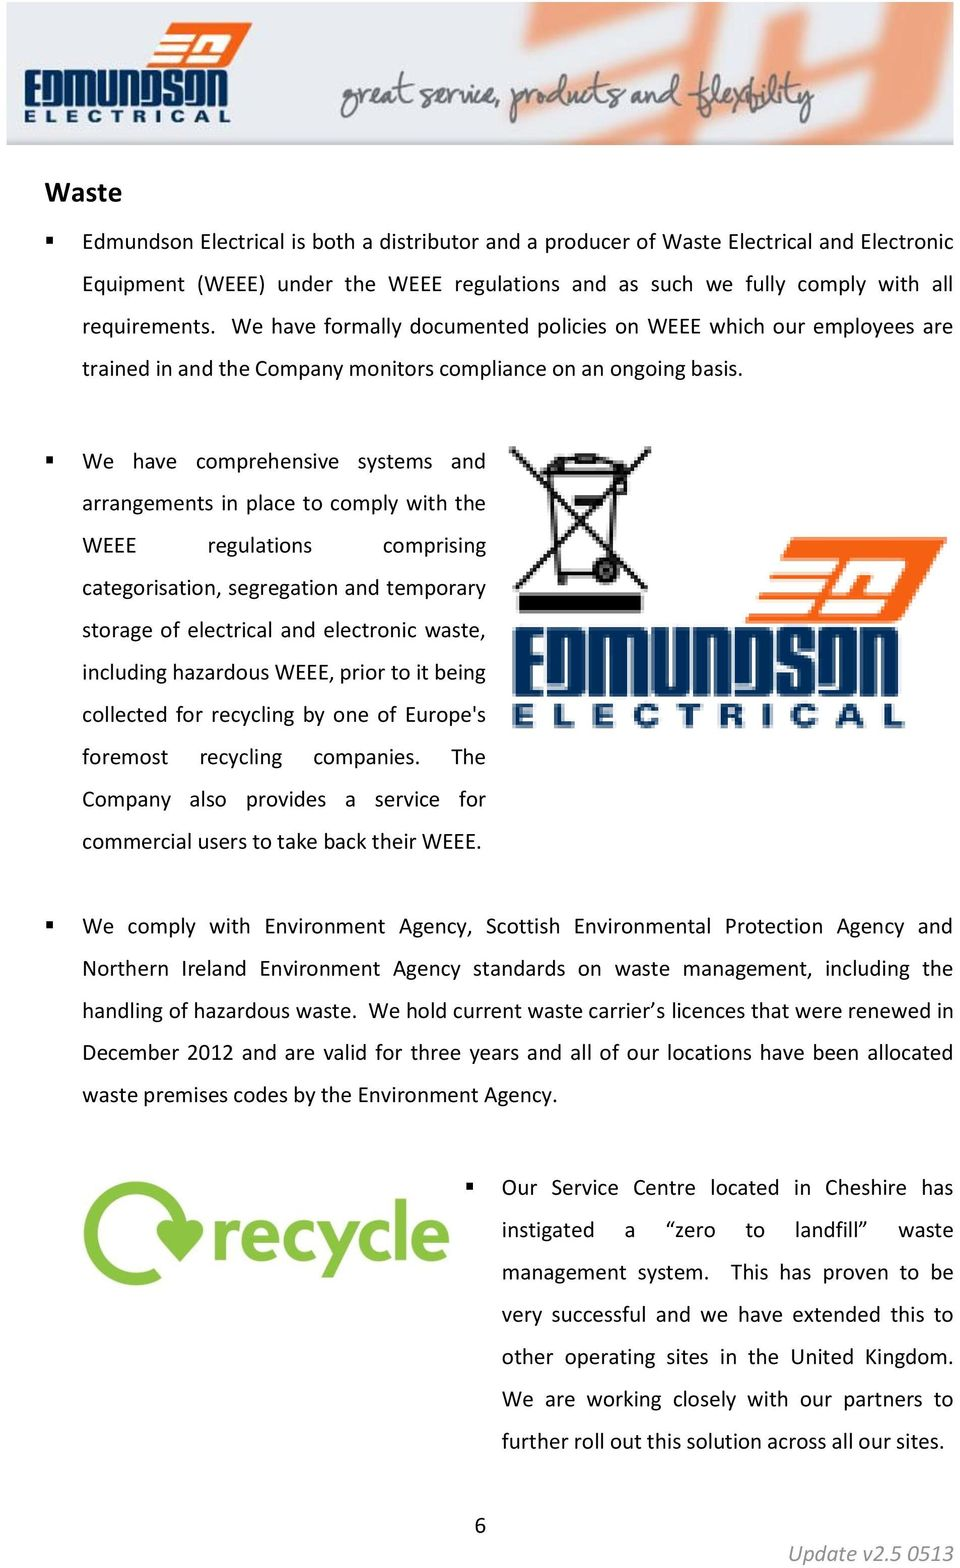 We have comprehensive systems and arrangements in place to comply with the WEEE regulations comprising categorisation, segregation and temporary storage of electrical and electronic waste, including